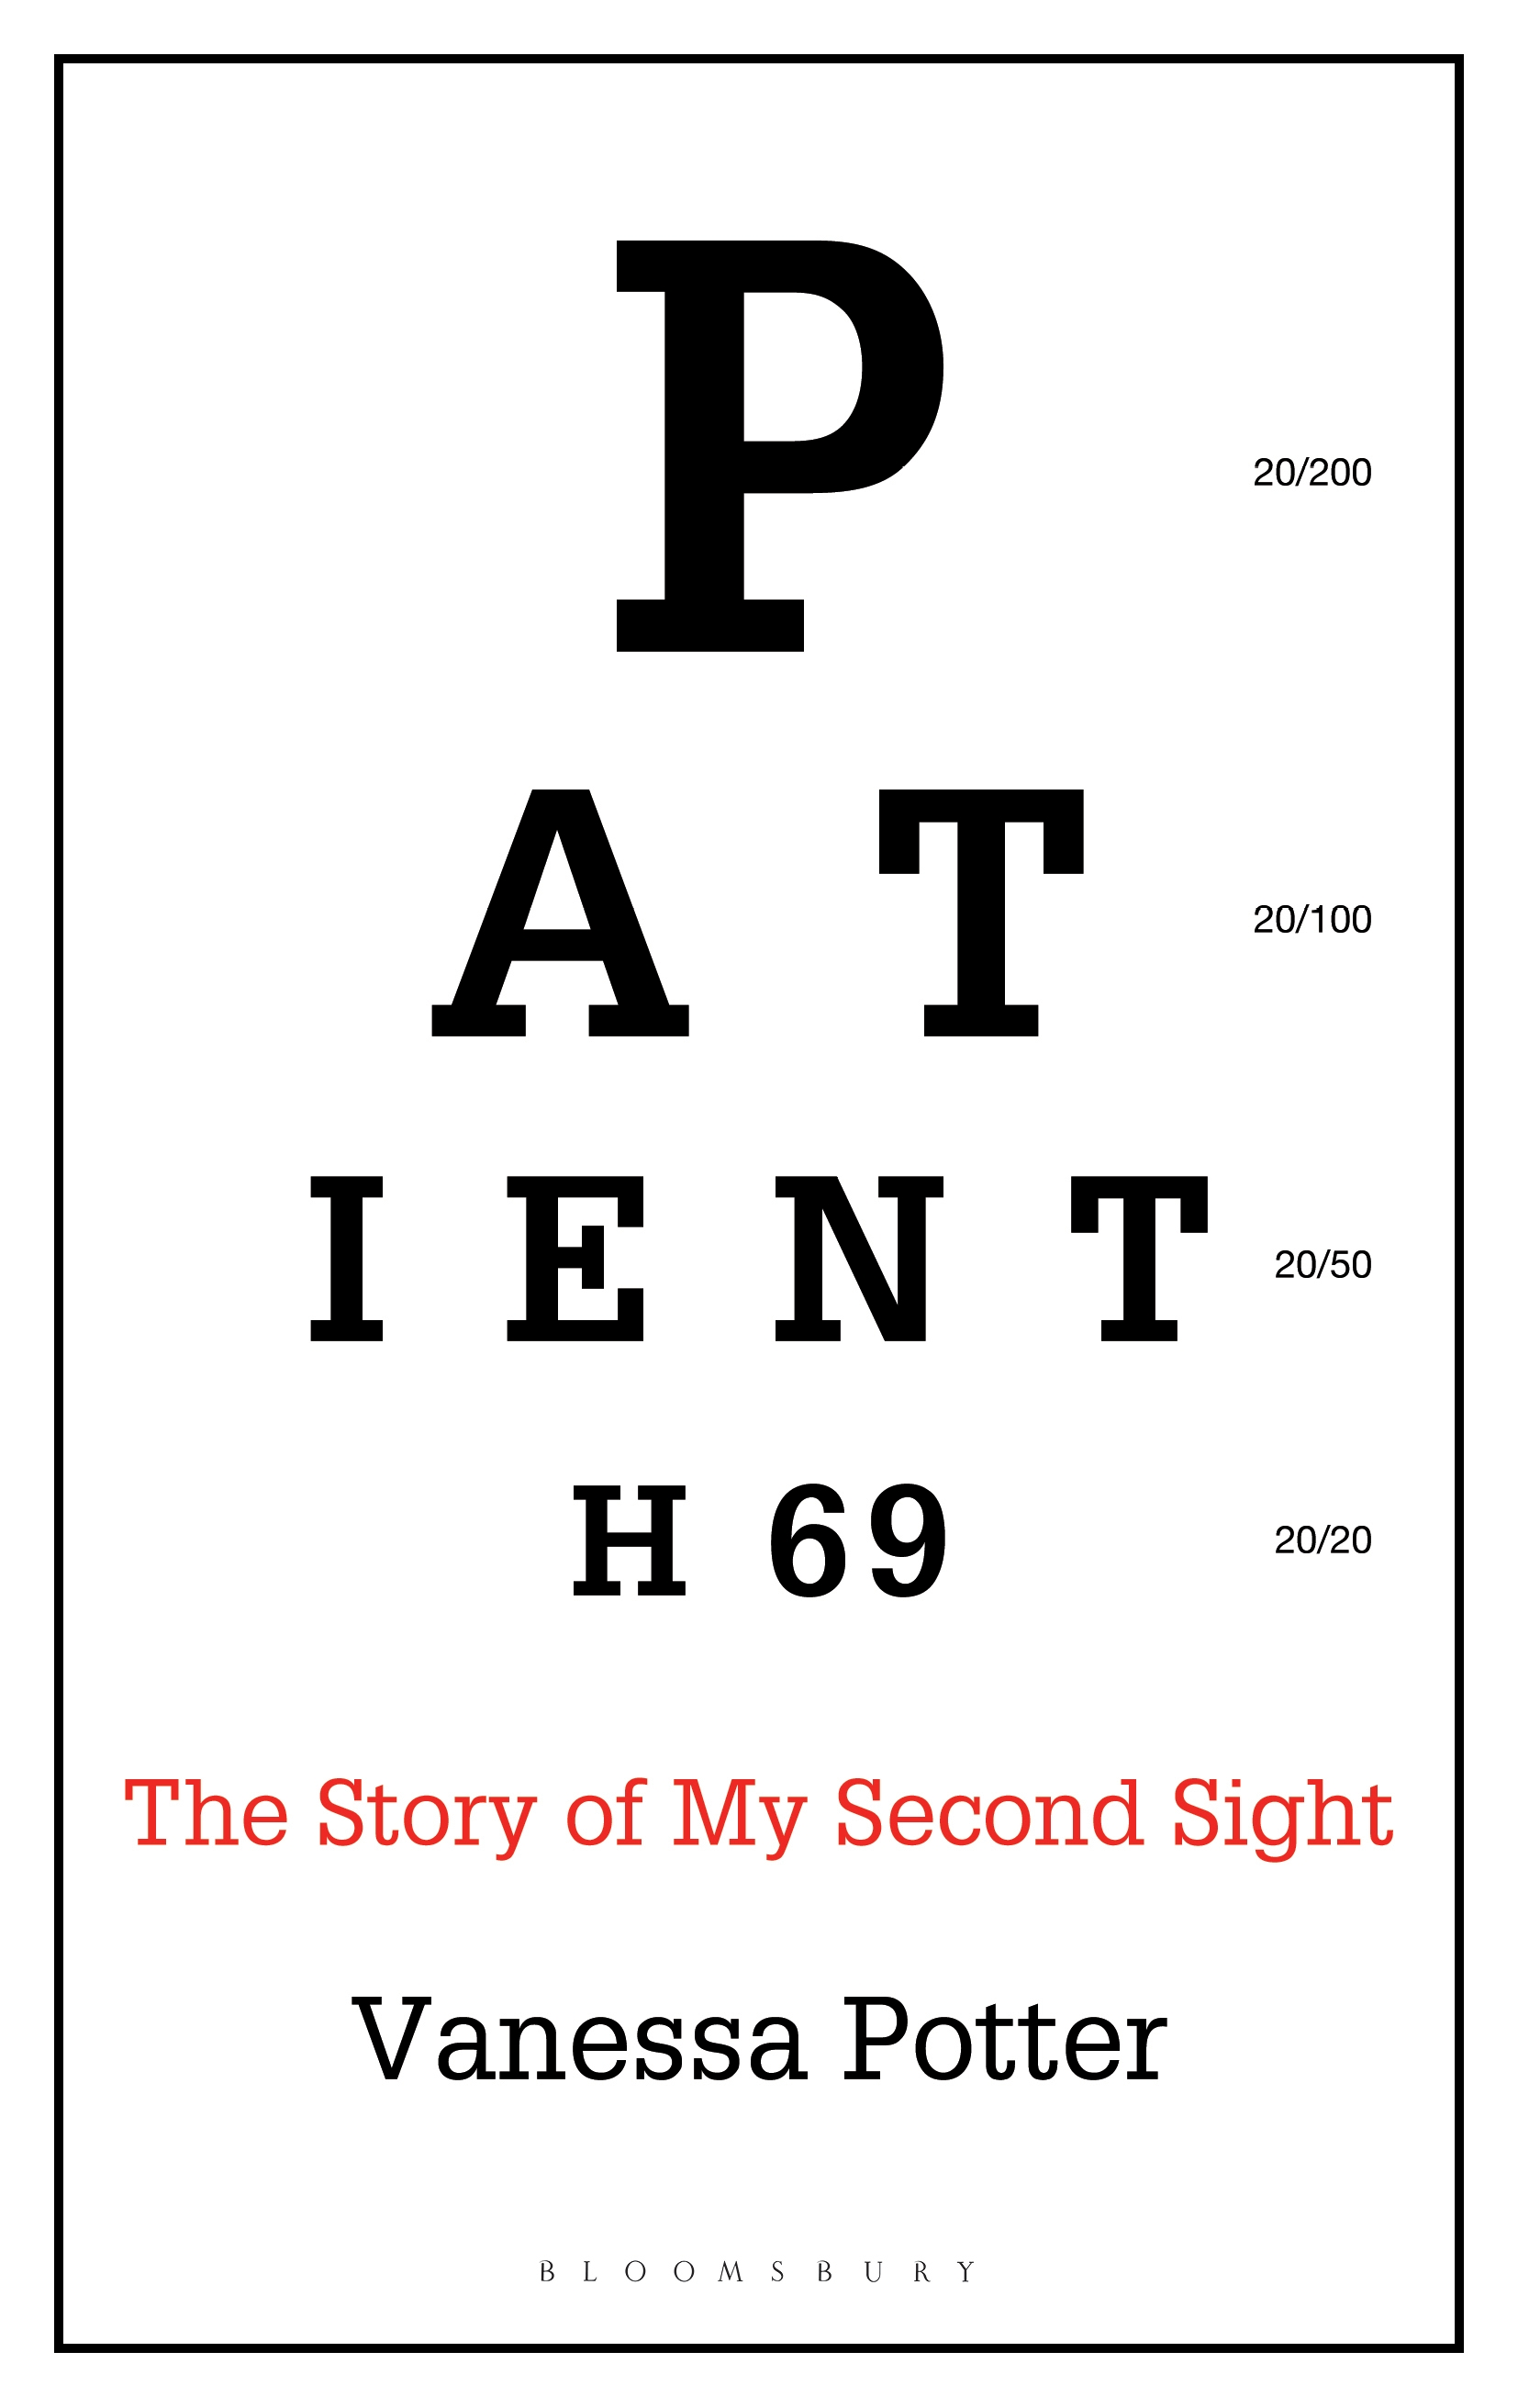 Patient H69 The Story of My Second Sight